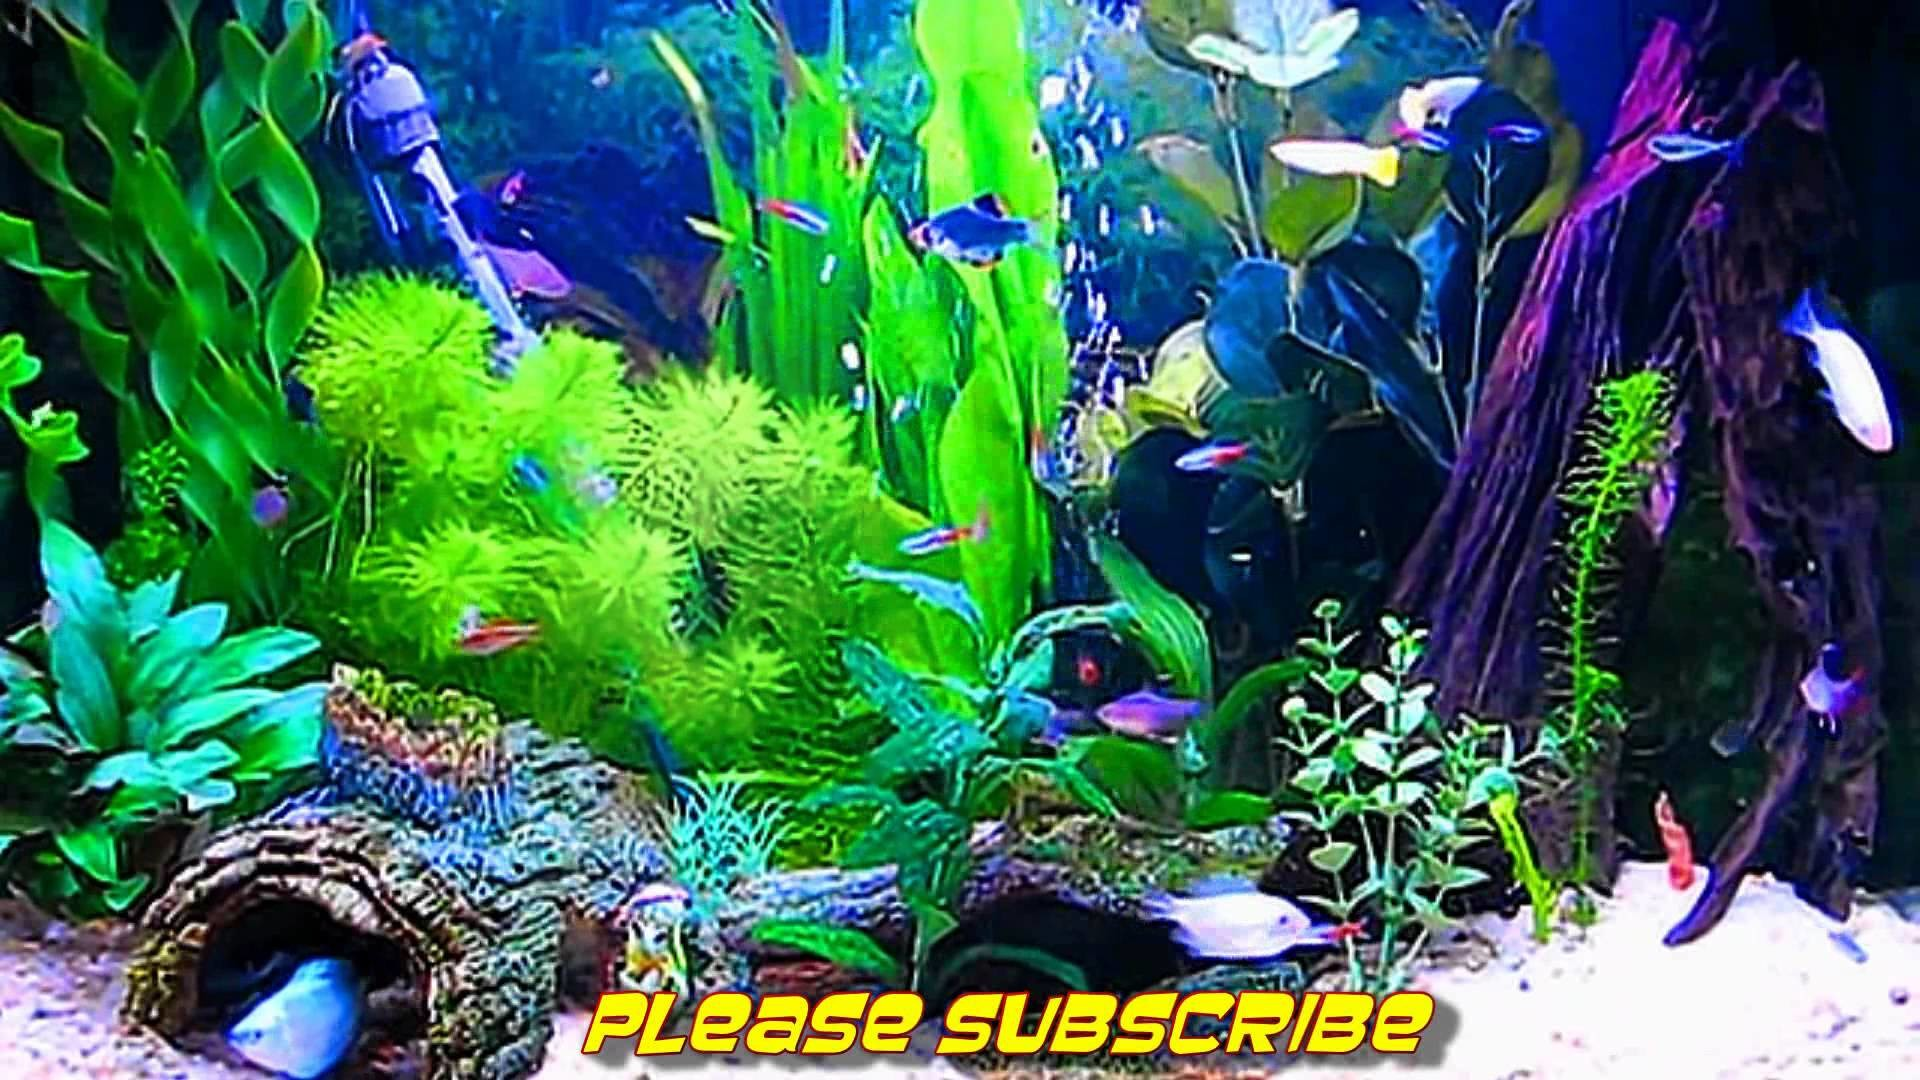 aquarium live wallpaper for pc 55 images